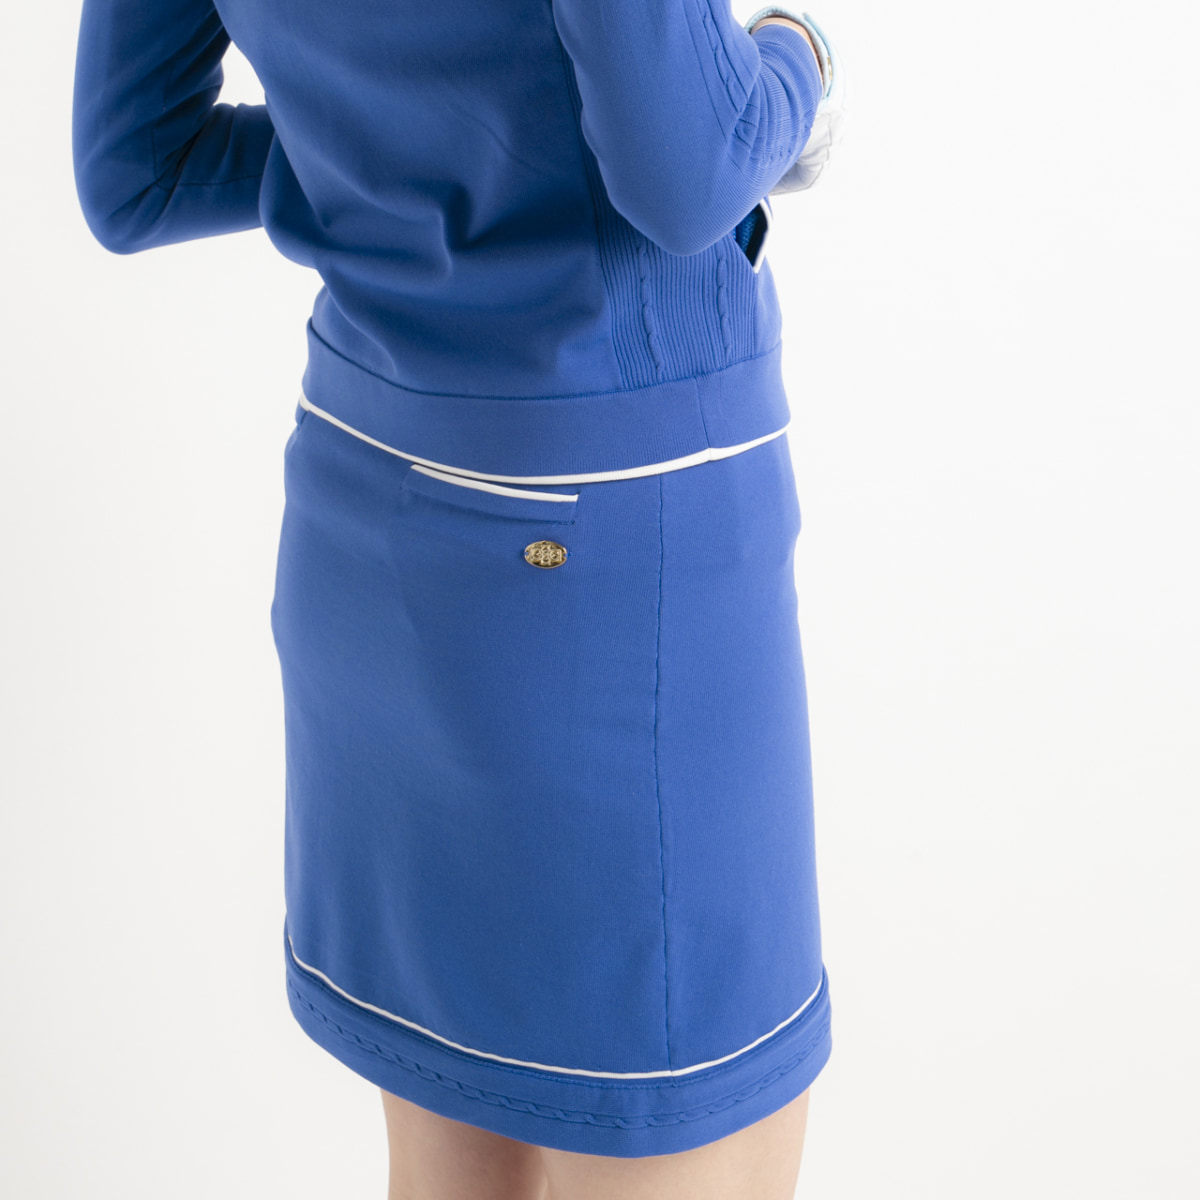 【SALE】Skirt – Water Resistance ~撥水ニットスカート~ blue-white